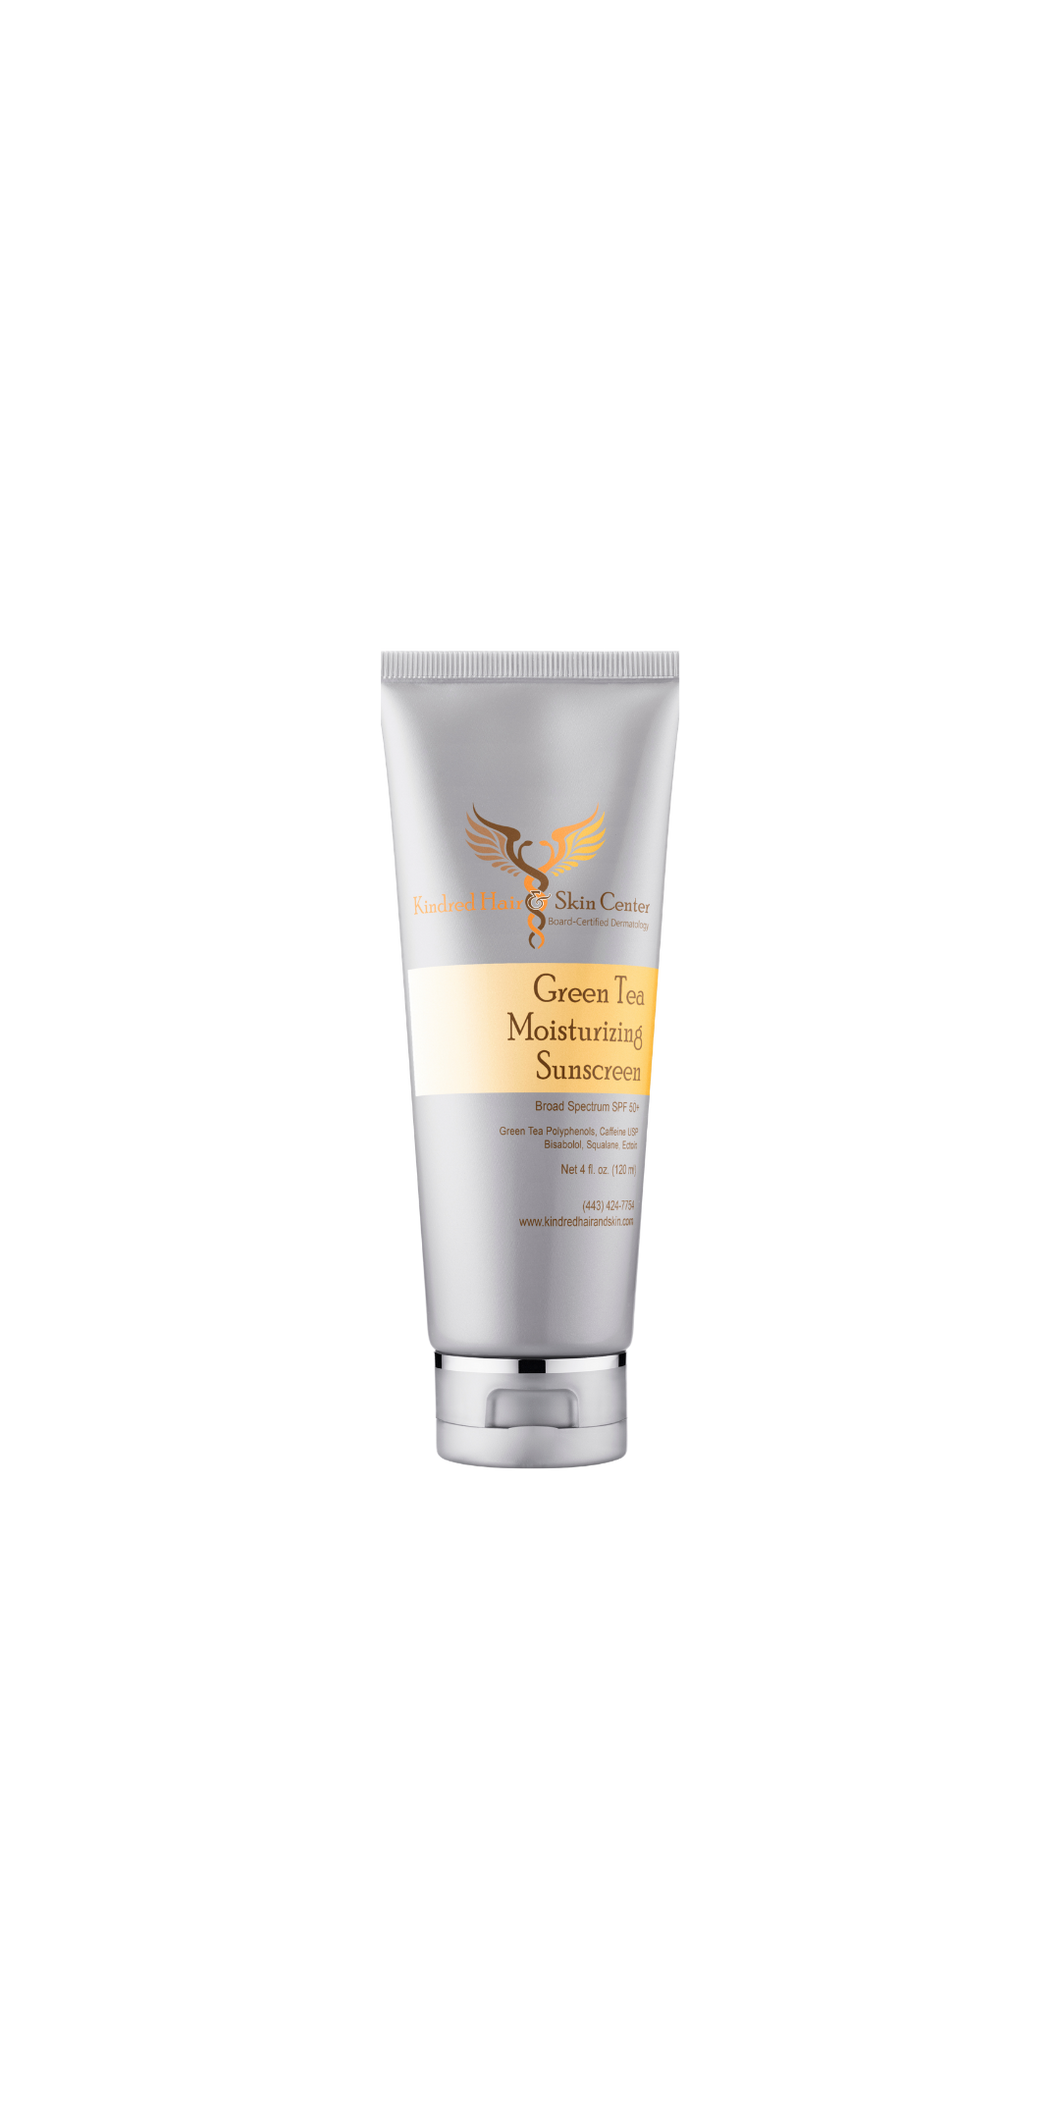 KHSC Green Tea Moisturizing Sunscreen